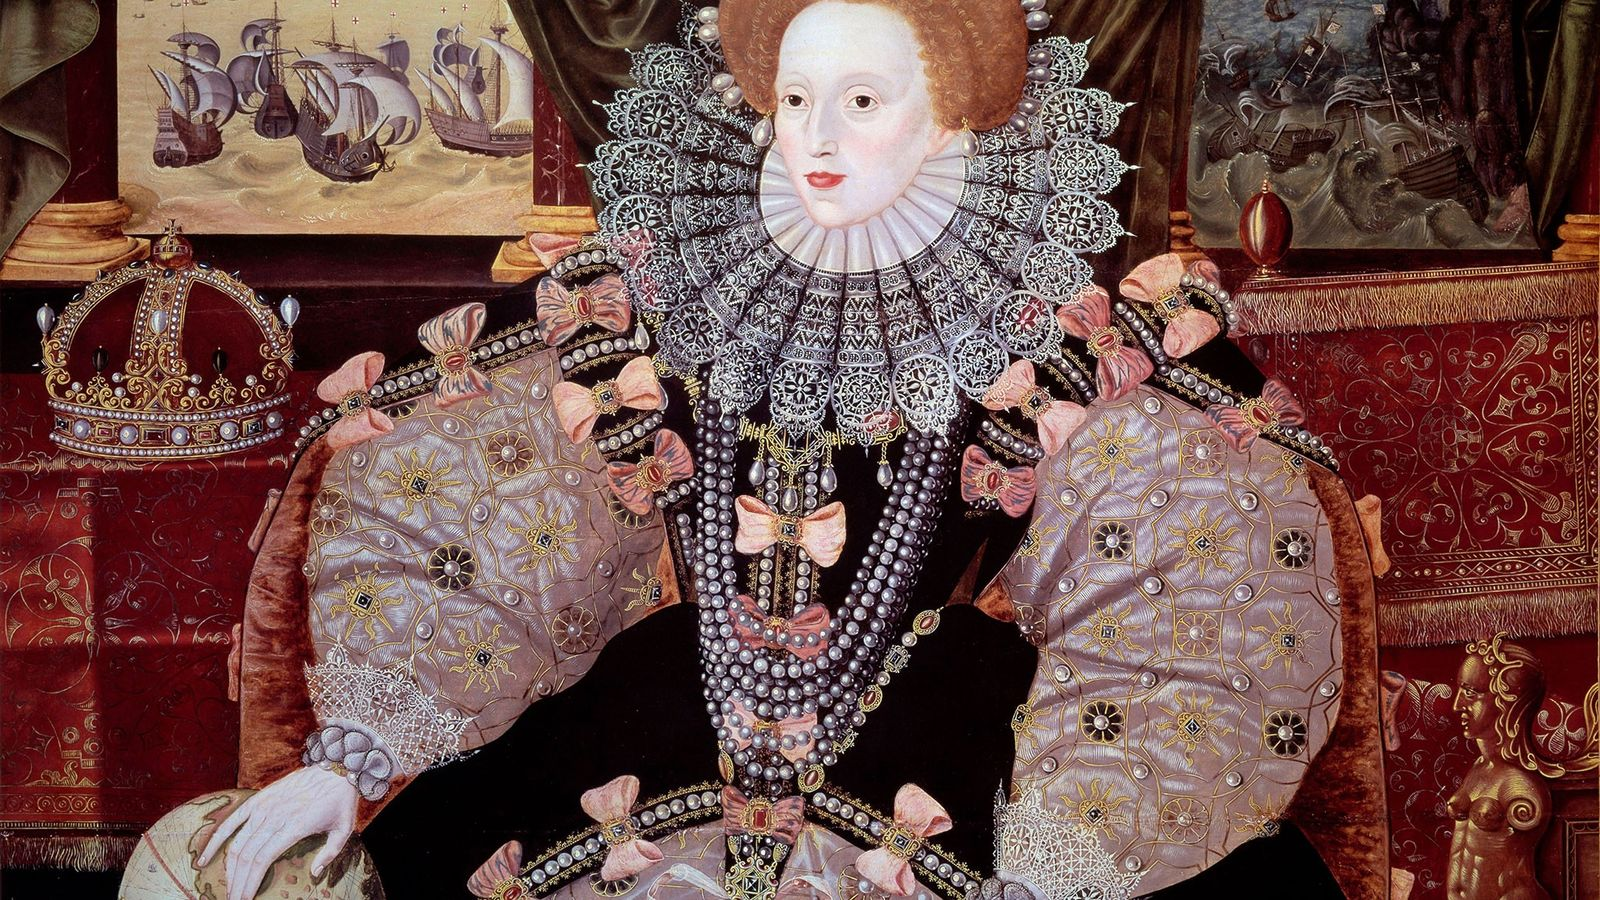 Queen Elizabeth I of England.